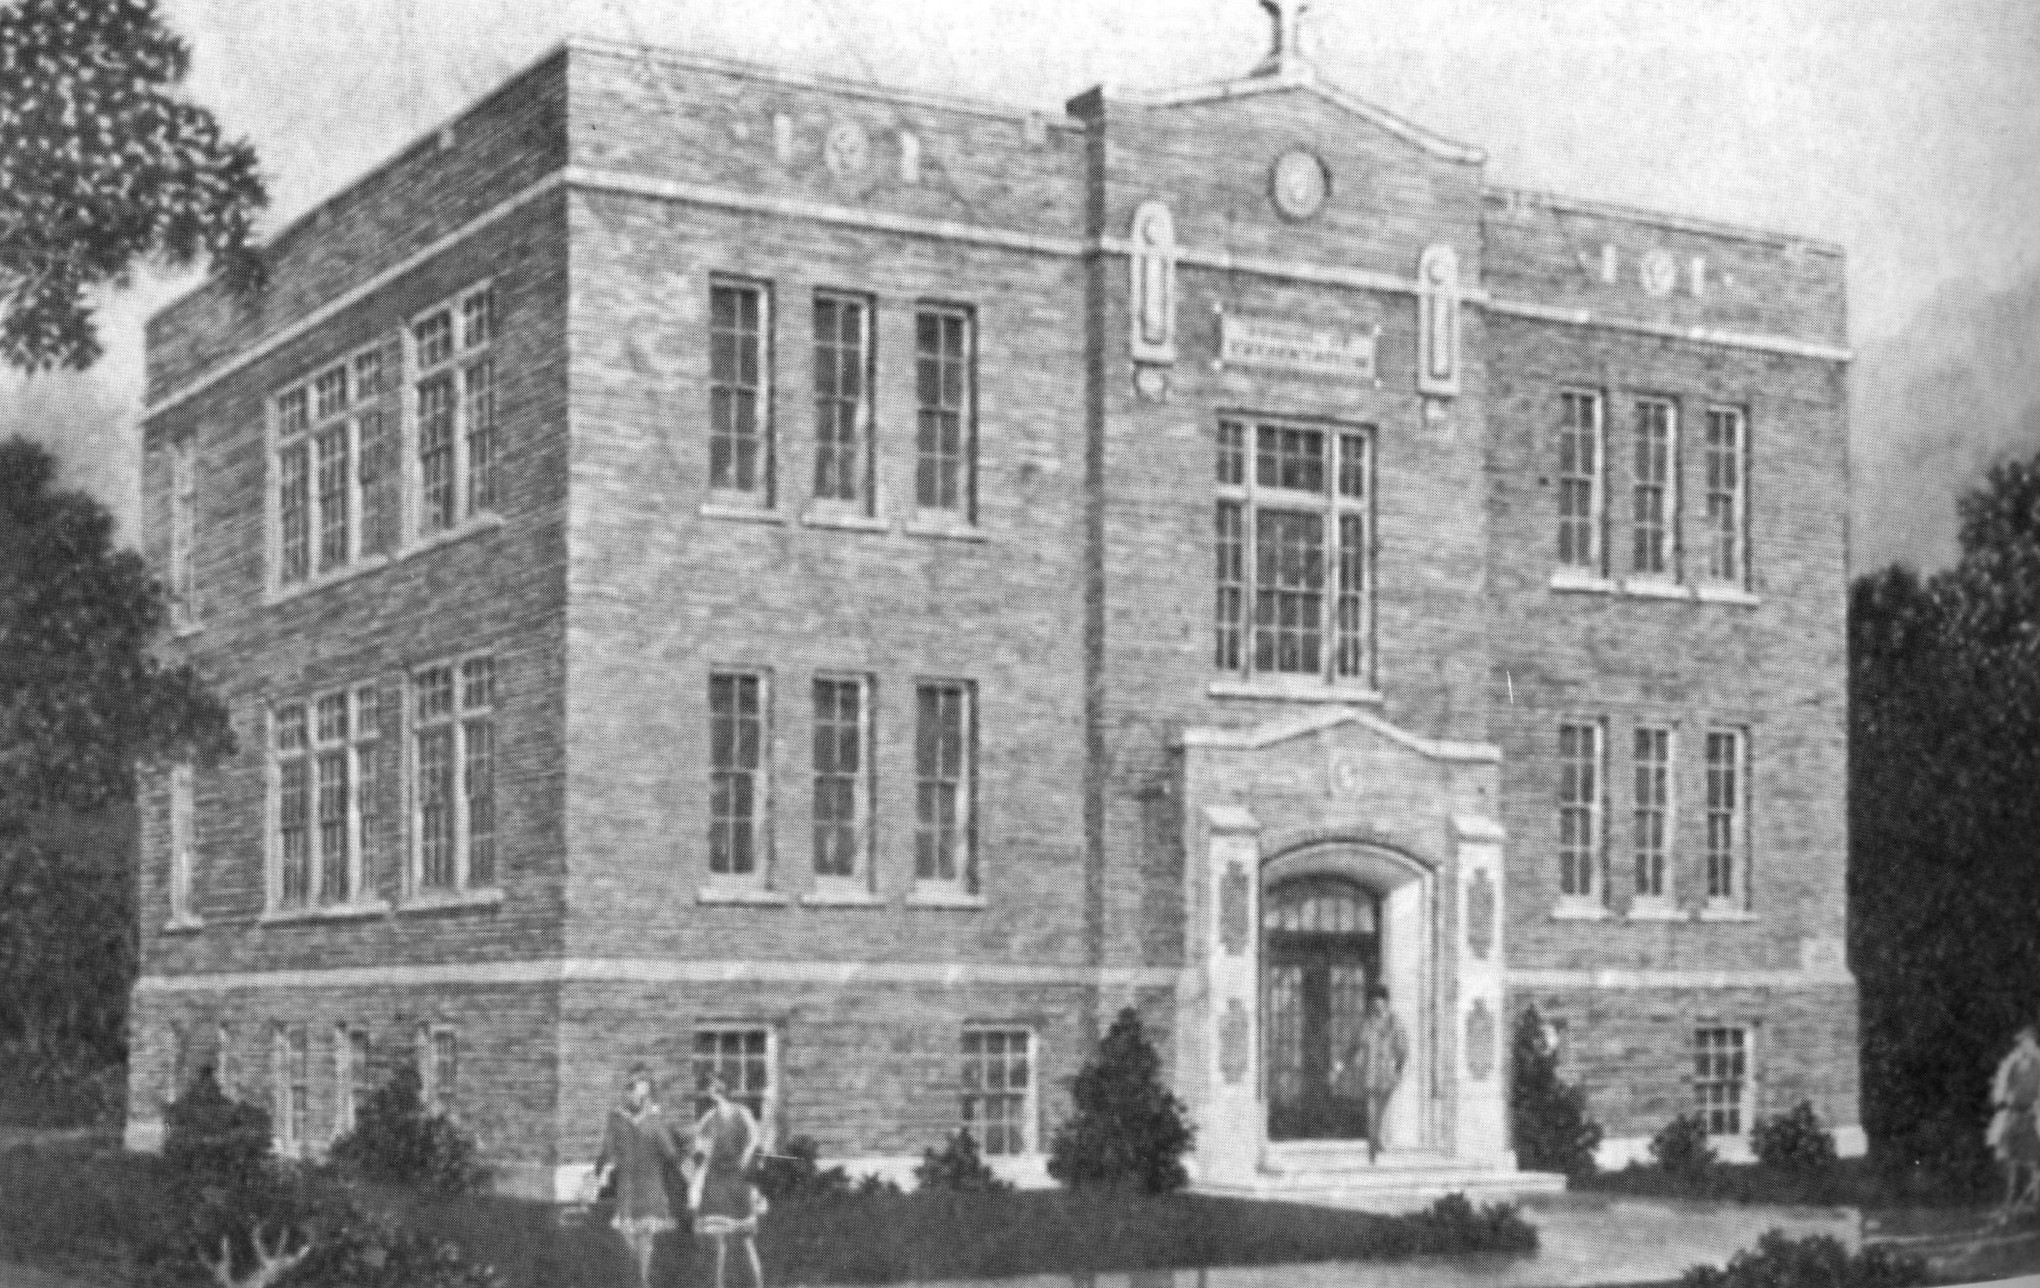 Architect's rendering of Presentation School, which opened in 1929.